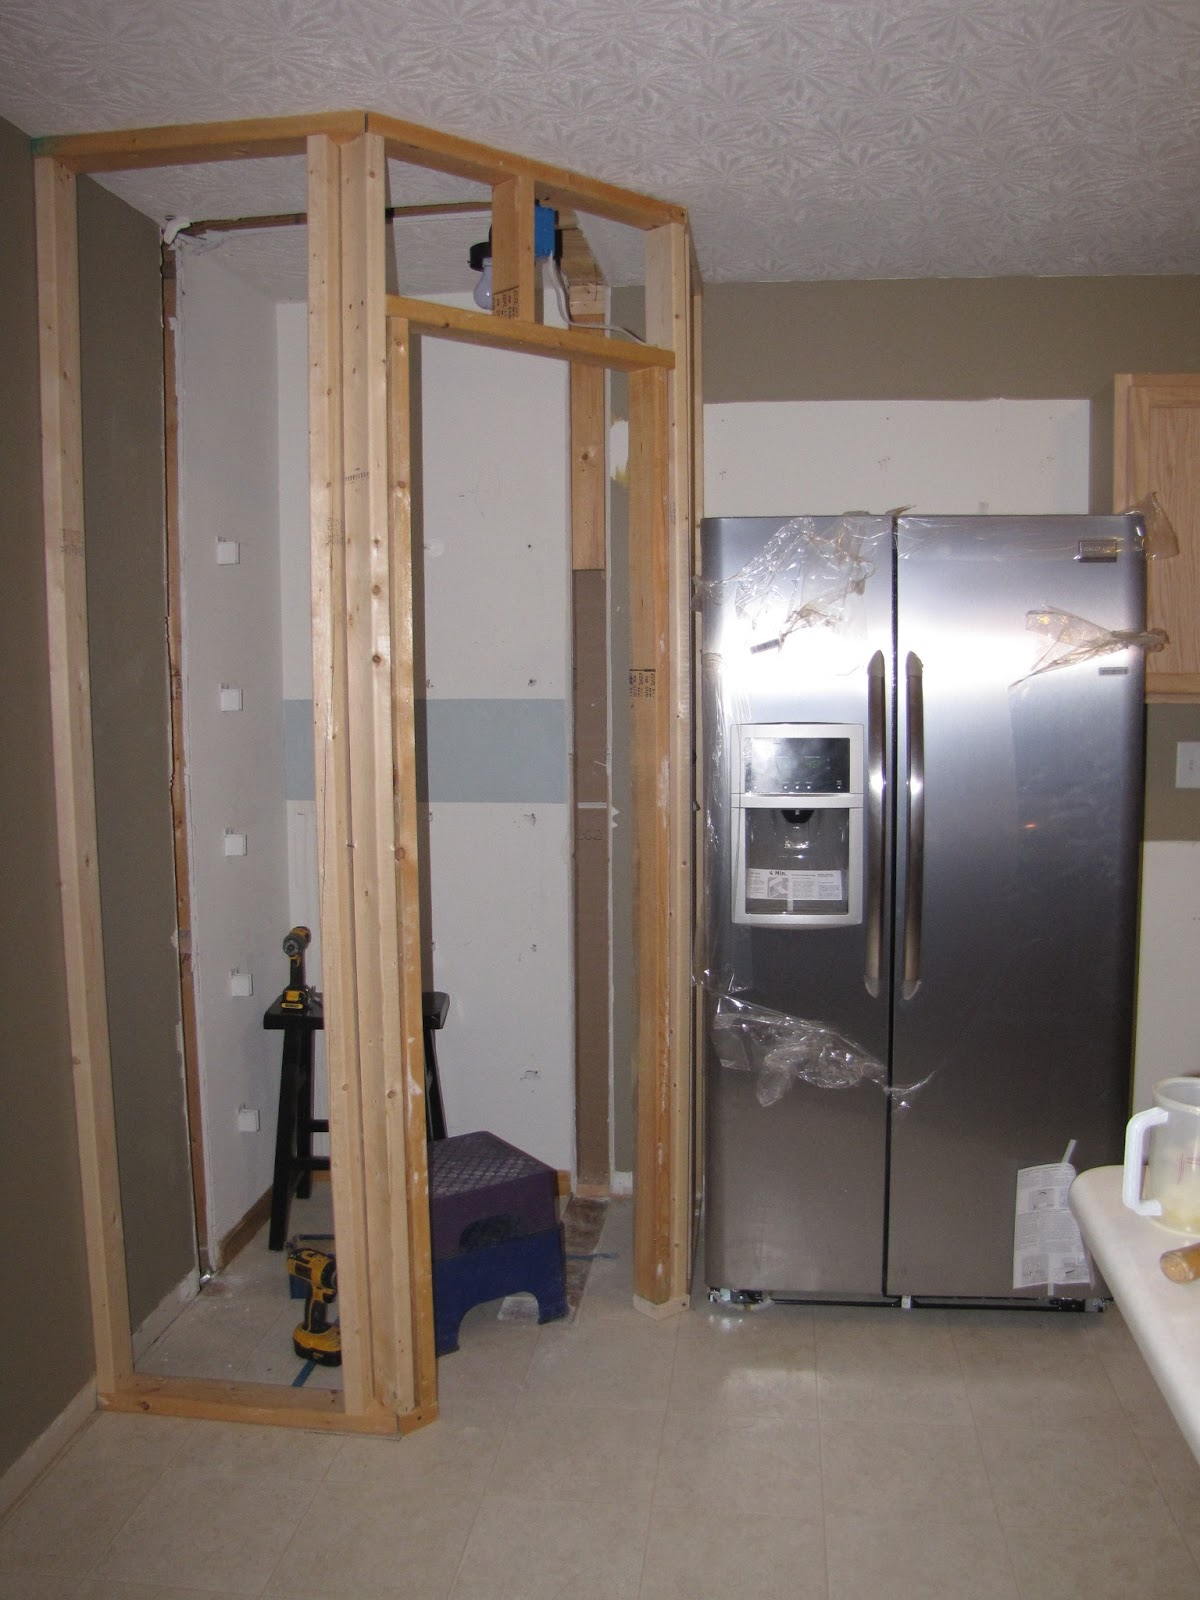 he also installed drywall and hung new stock cabinets